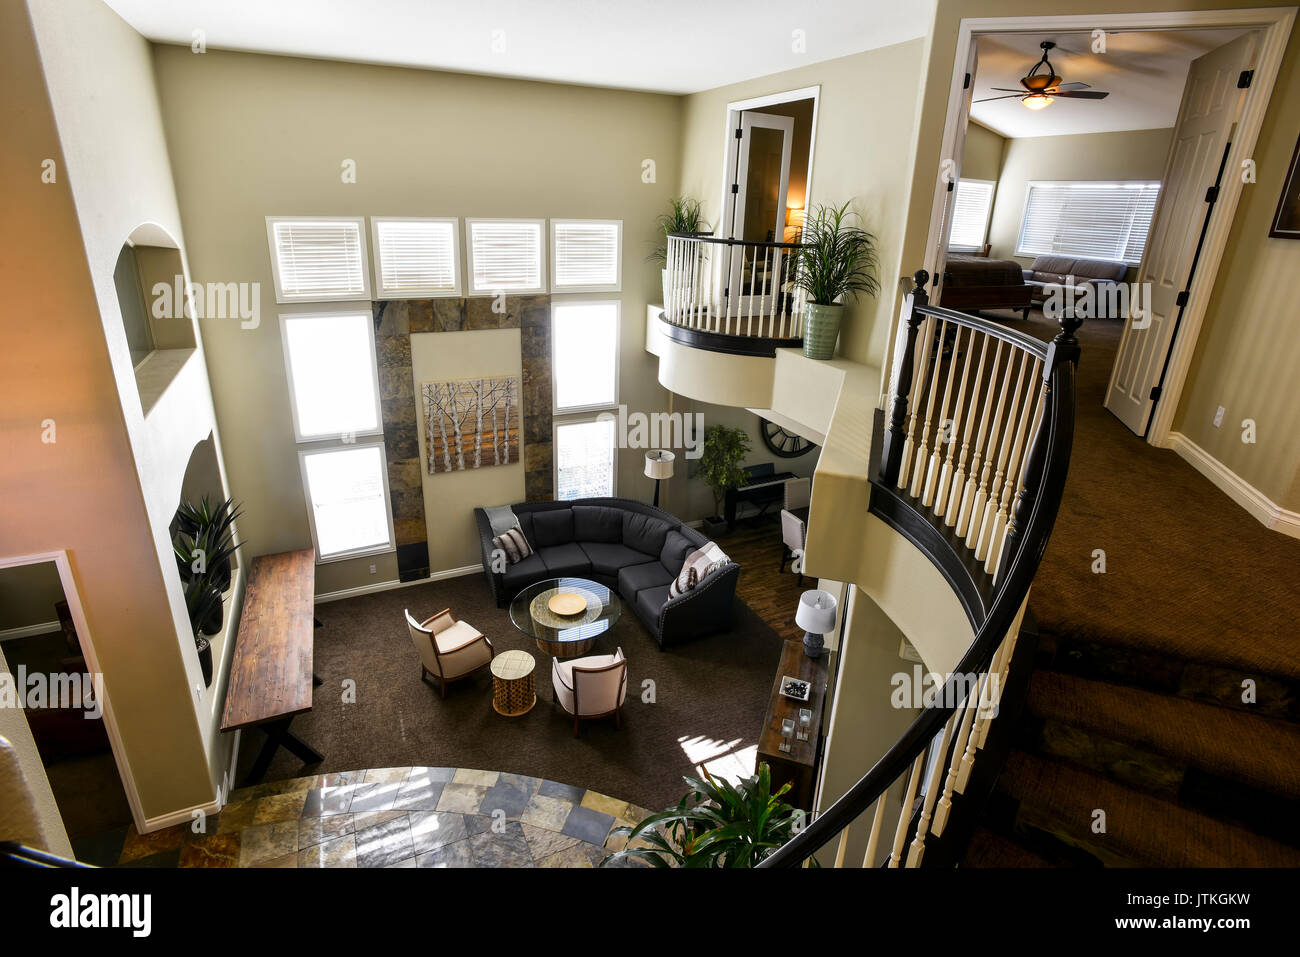 Residential Home Interior - Stock Image